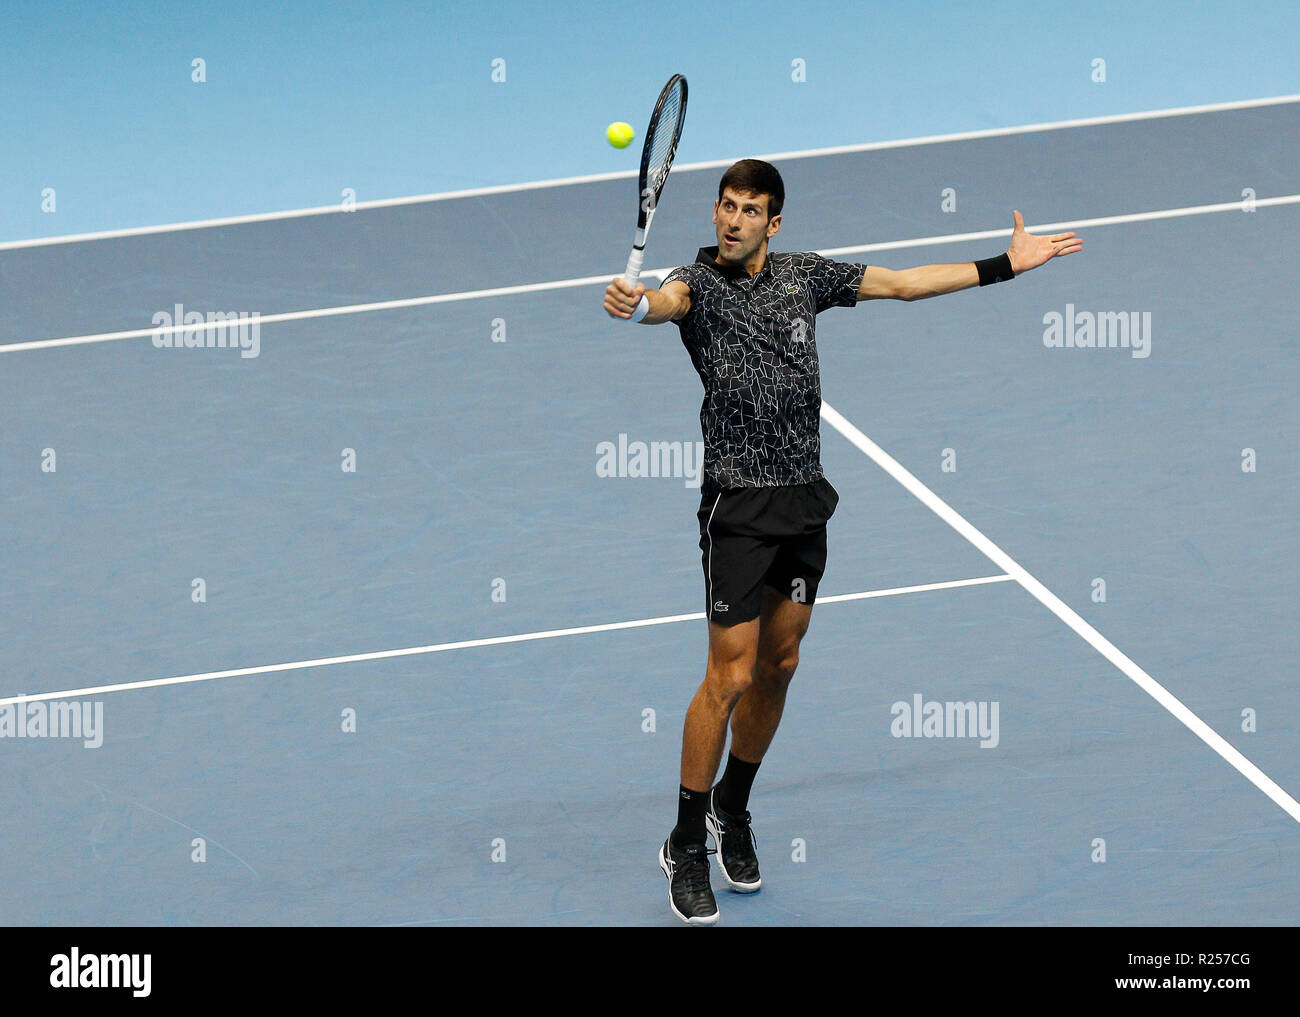 16th November 2018, O2 Arena, London, England; Nitto ATP Tennis Finals; Novak Djokovic (SRB) plays a backhand volley shot in his match against Marin Cilic (CRO) - Stock Image